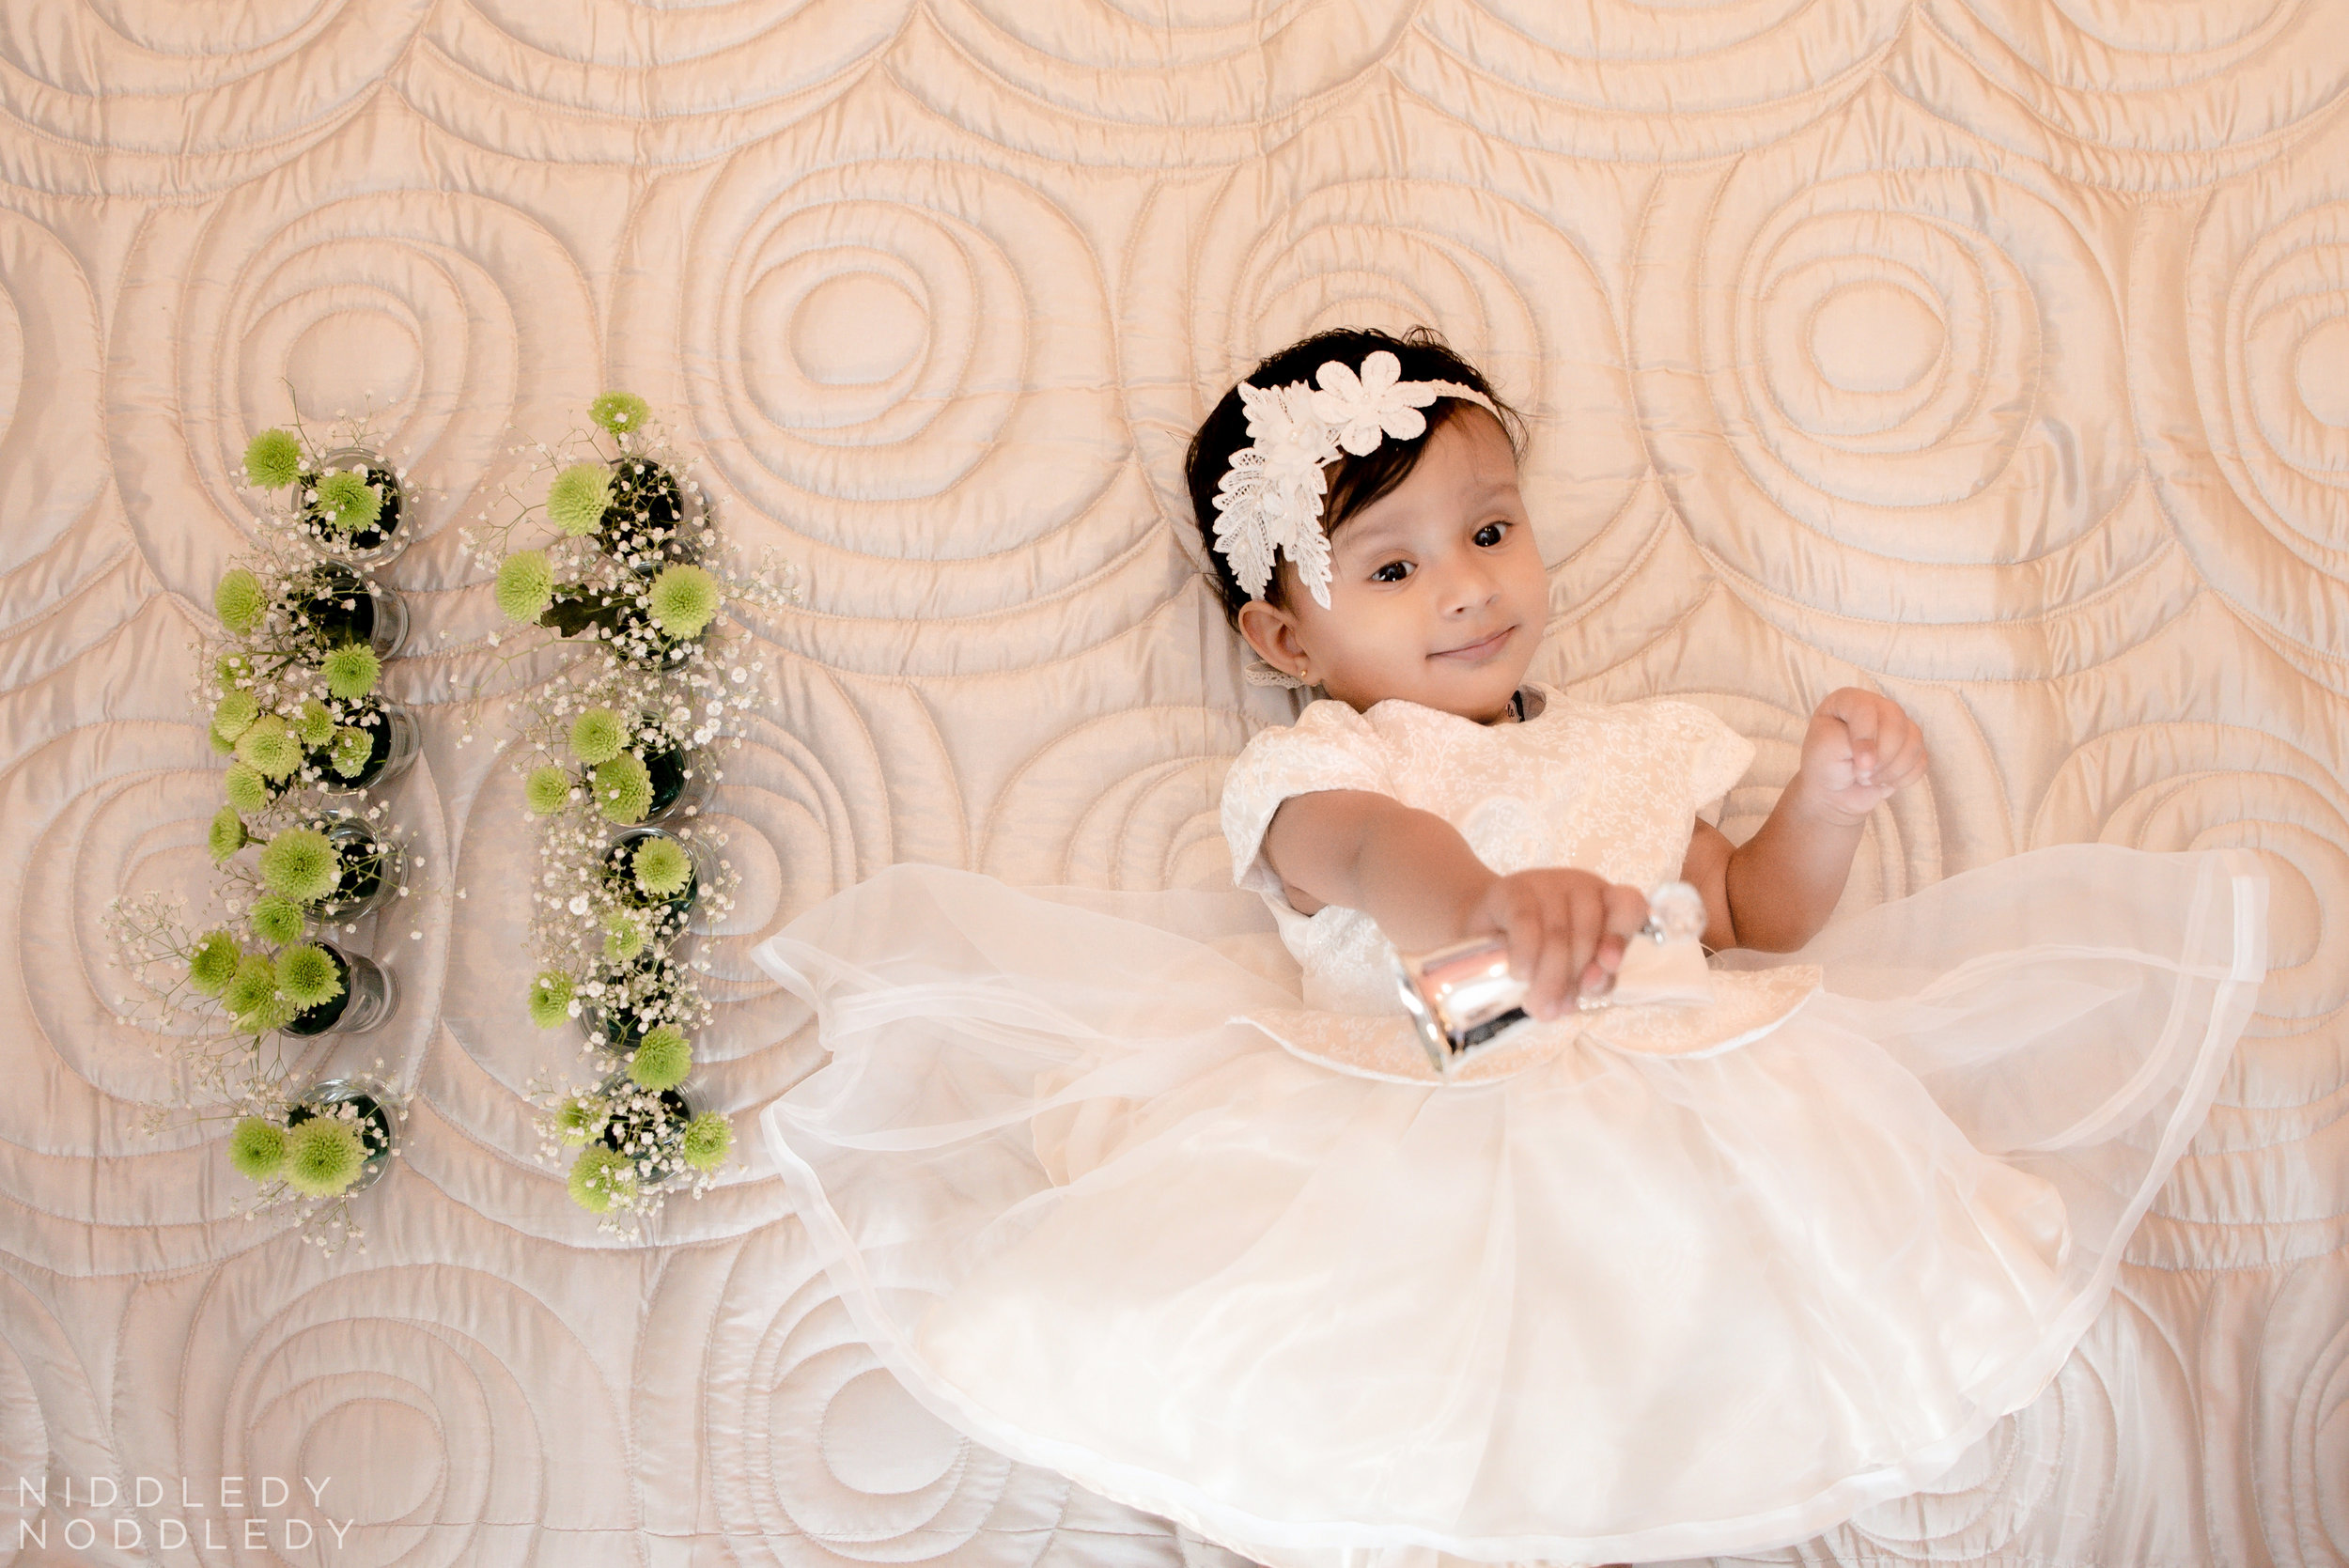 Anaisha Baby Photoshoot ❤ NiddledyNoddledy.com ~ Bumps to Babies Photography, Kolkata - 140.jpg